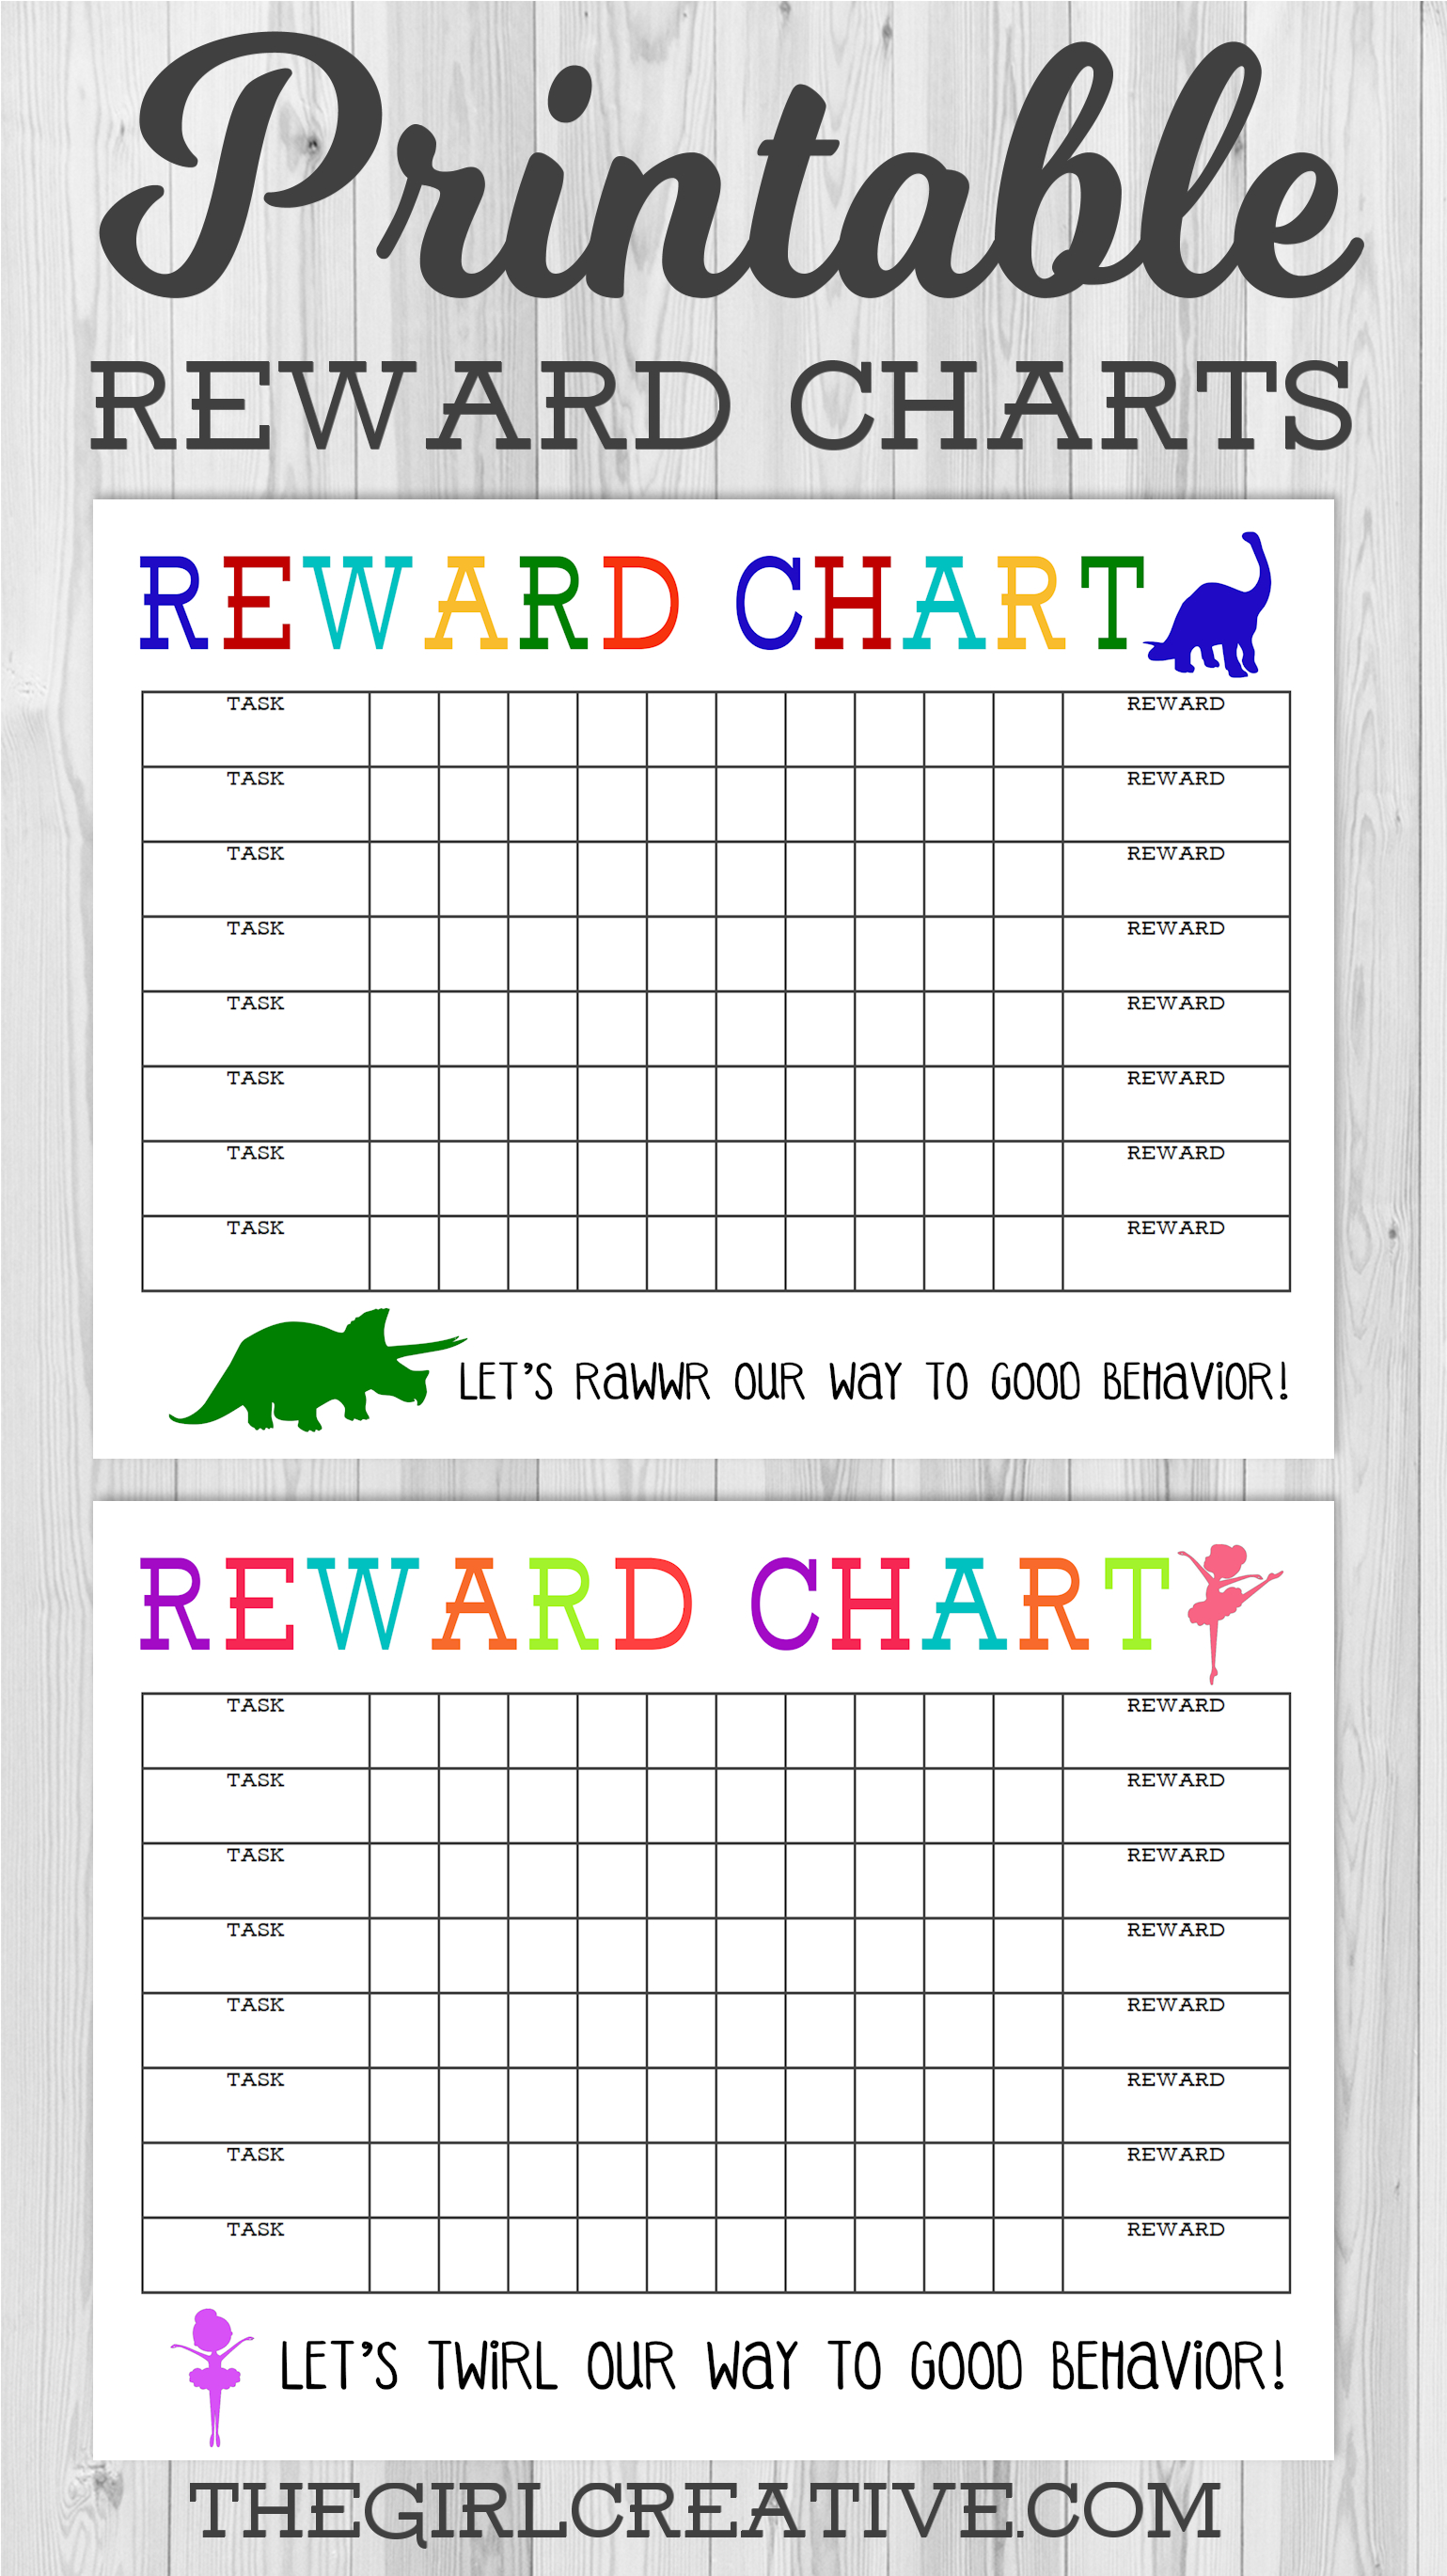 Printable Reward Chart | Share Today's Craft And Diy Ideas | Reward - Free Printable Reward Charts